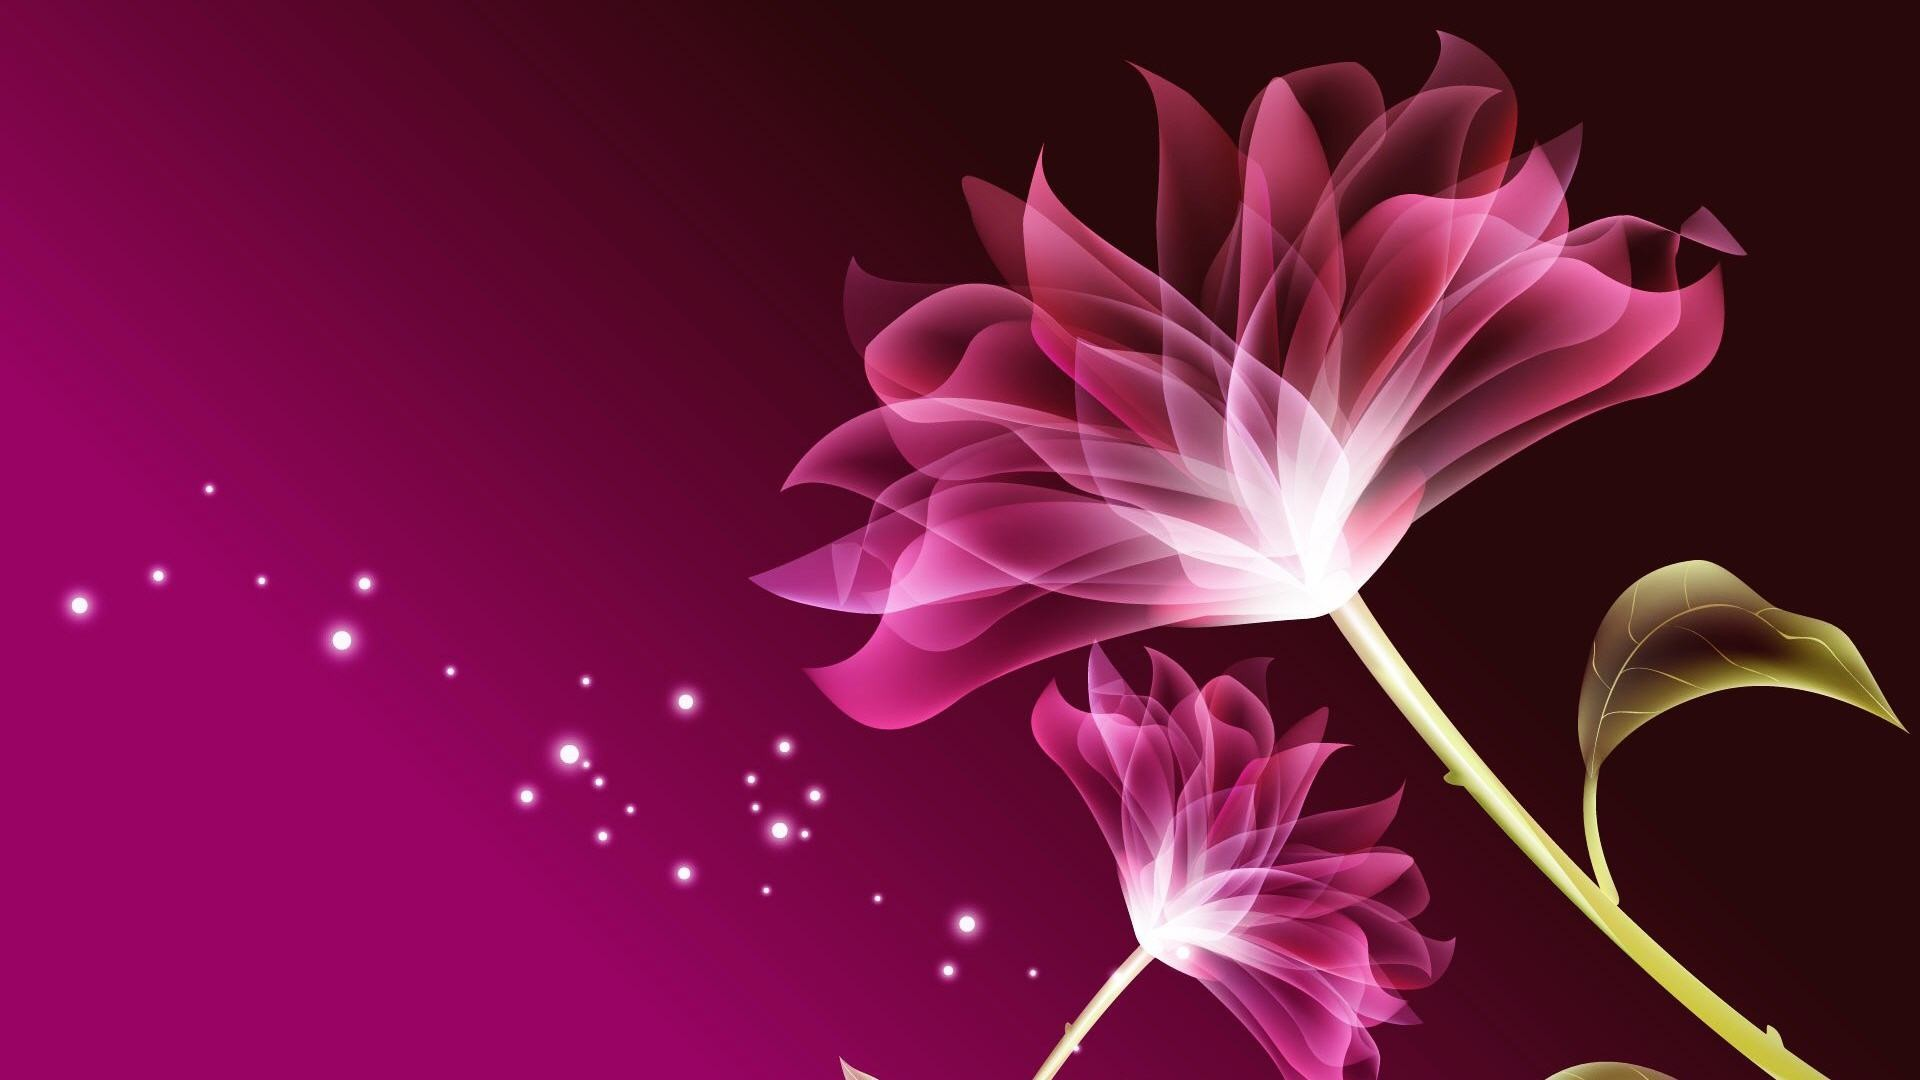 Pink flower desktop wallpapers 69 background pictures 1920x1080 bows satin shiny flowers lilies sparkles ribbons stars pink flower desktop wallpaper hd izmirmasajfo